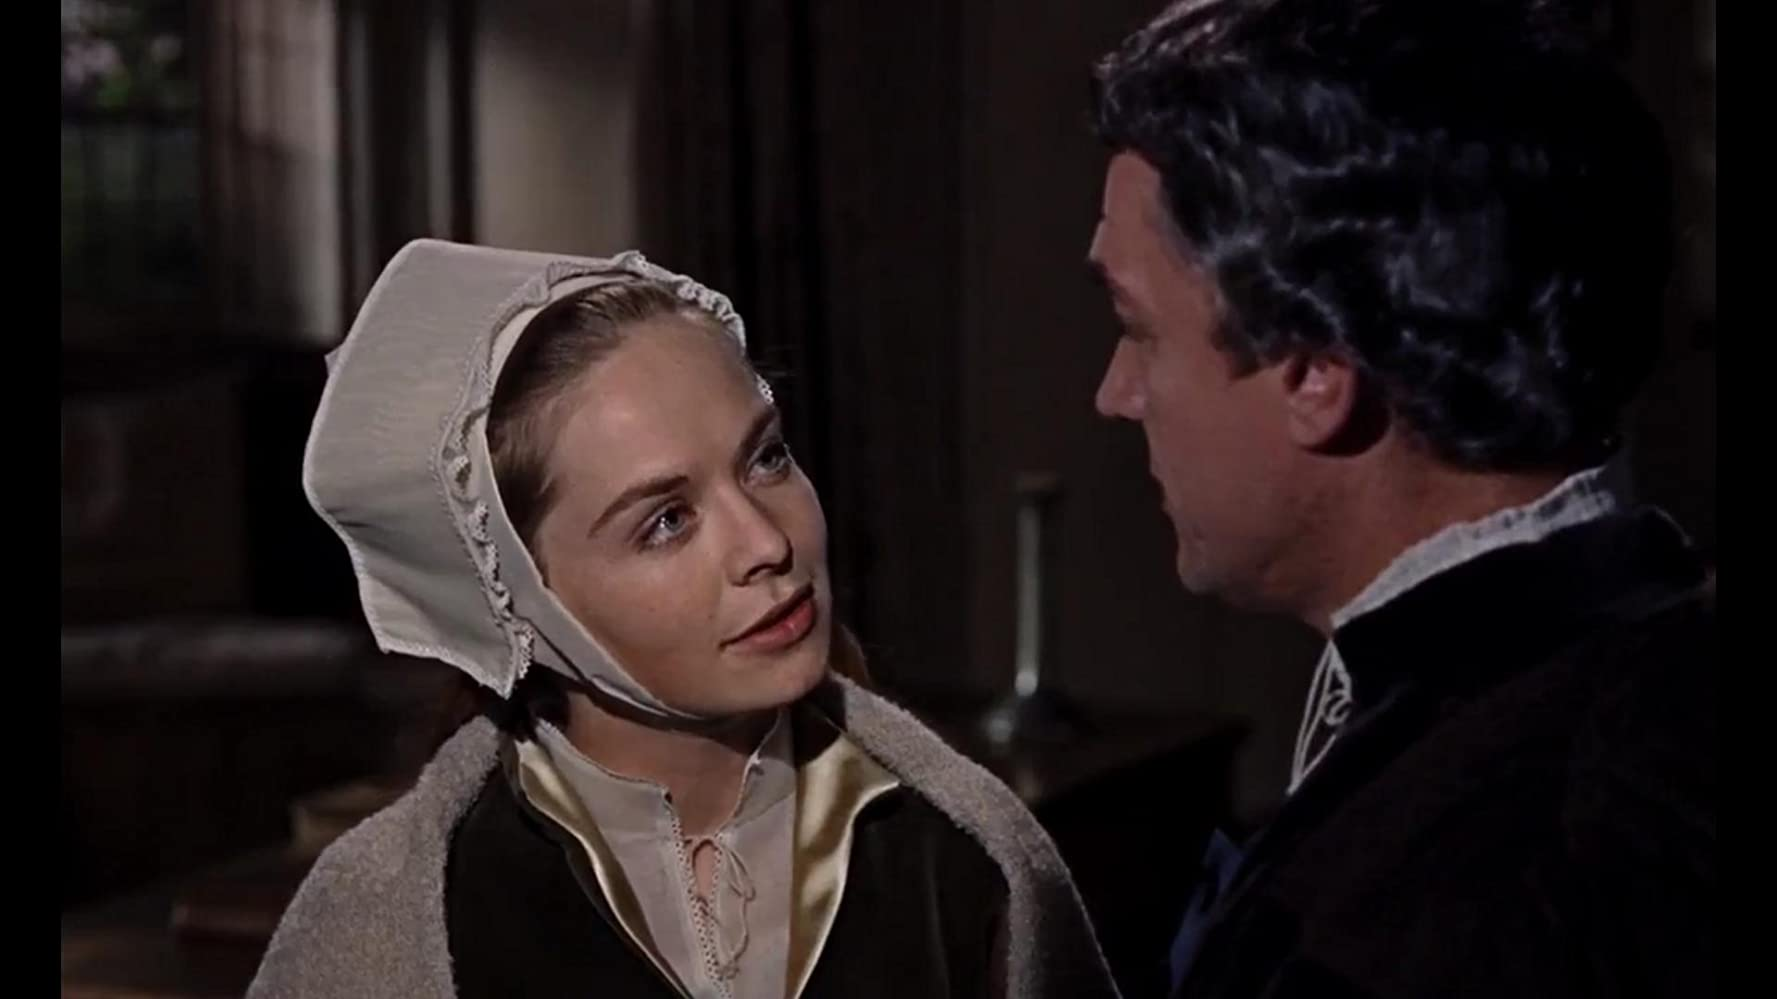 Paul Scofield and Susannah York in A Man for All Seasons (1966)